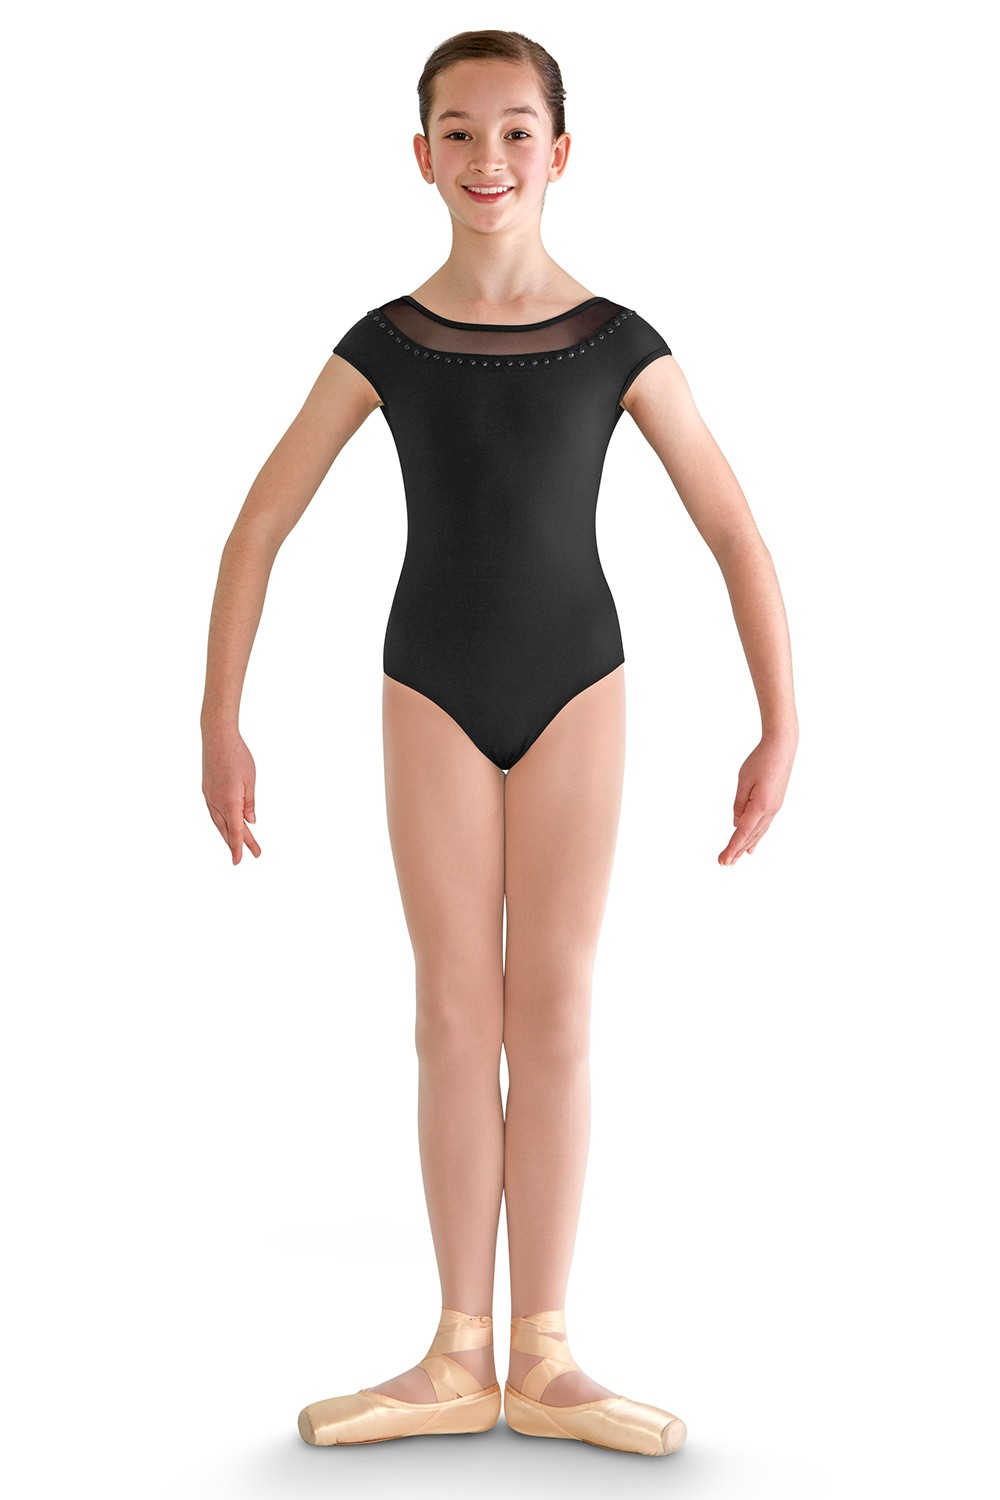 Fremont Girls Short Sleeve Leotards